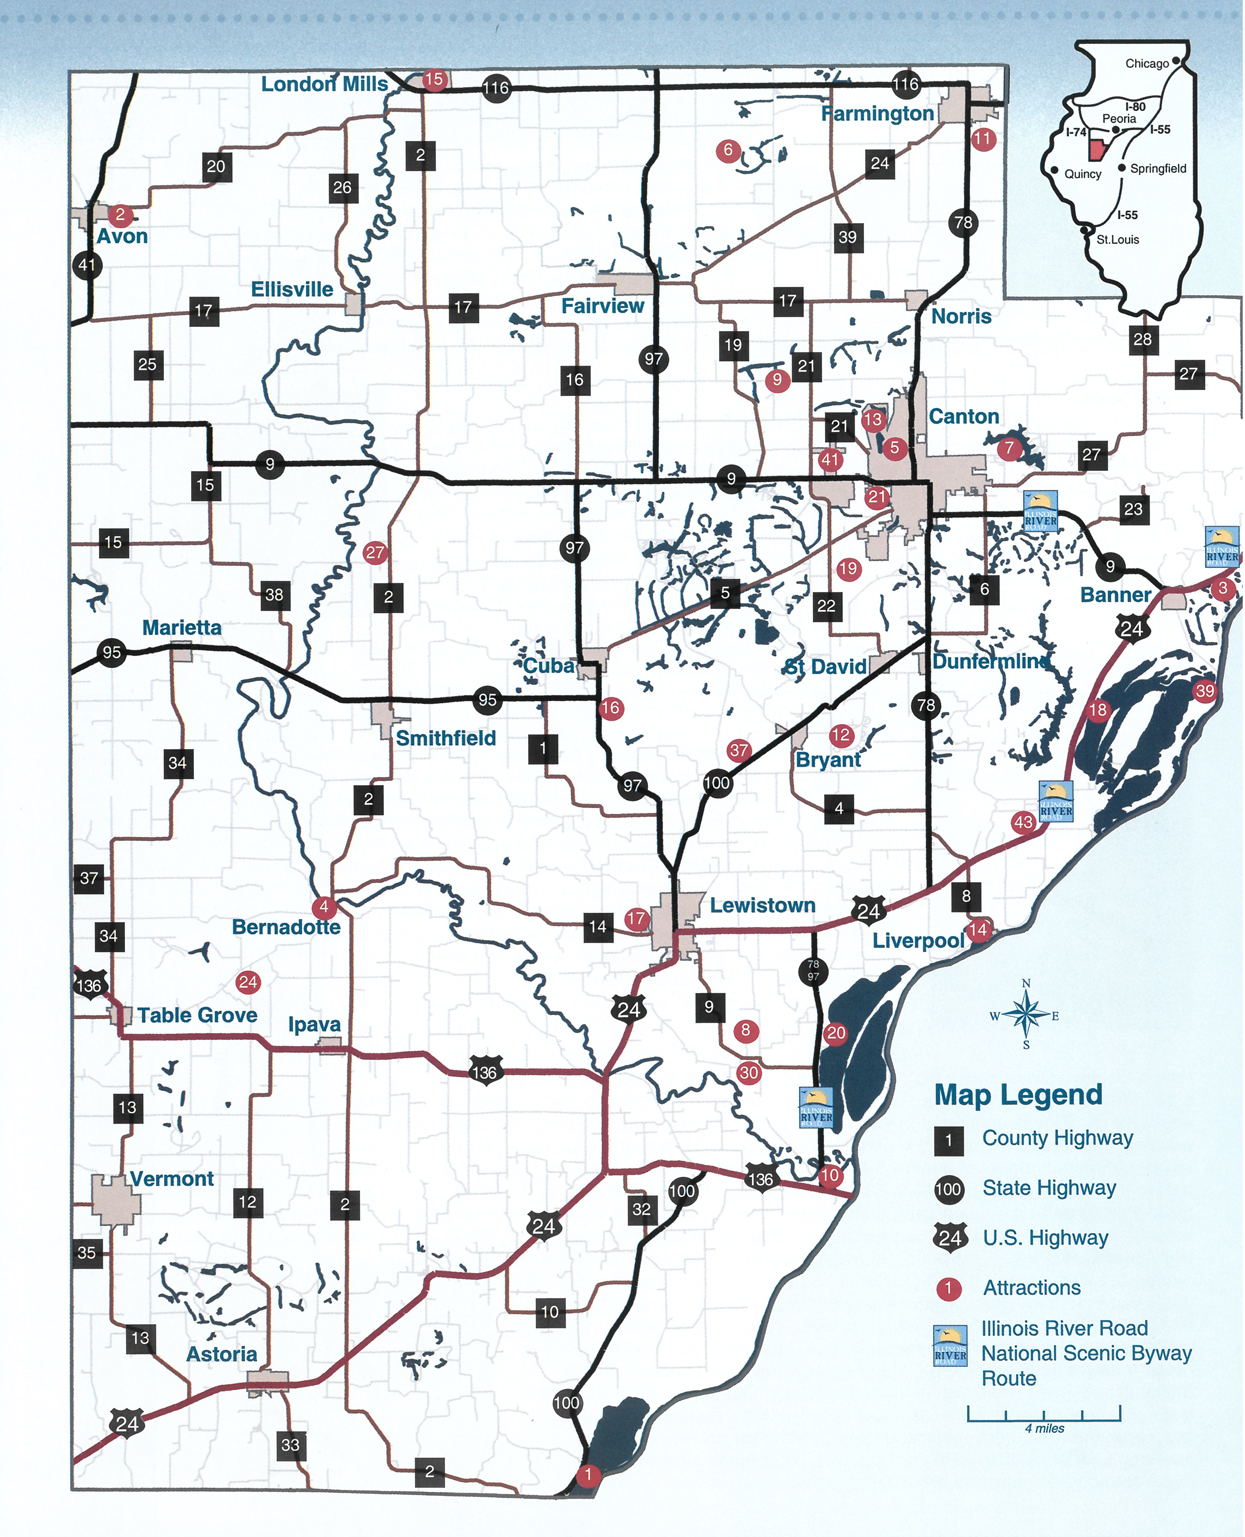 County Maps | on il maps with counties and cities, il railroad map, bethalto il map, waterloo ne map, il city map, burbank street map, kankakee county township map, hoffman estates il map, il county map, il highway conditions, laporte county township map, il 355 map, il tollway map, woodstock il map, il senate district map, huntley il map, il river map, il state map, i-64 ky map, burbank il map,